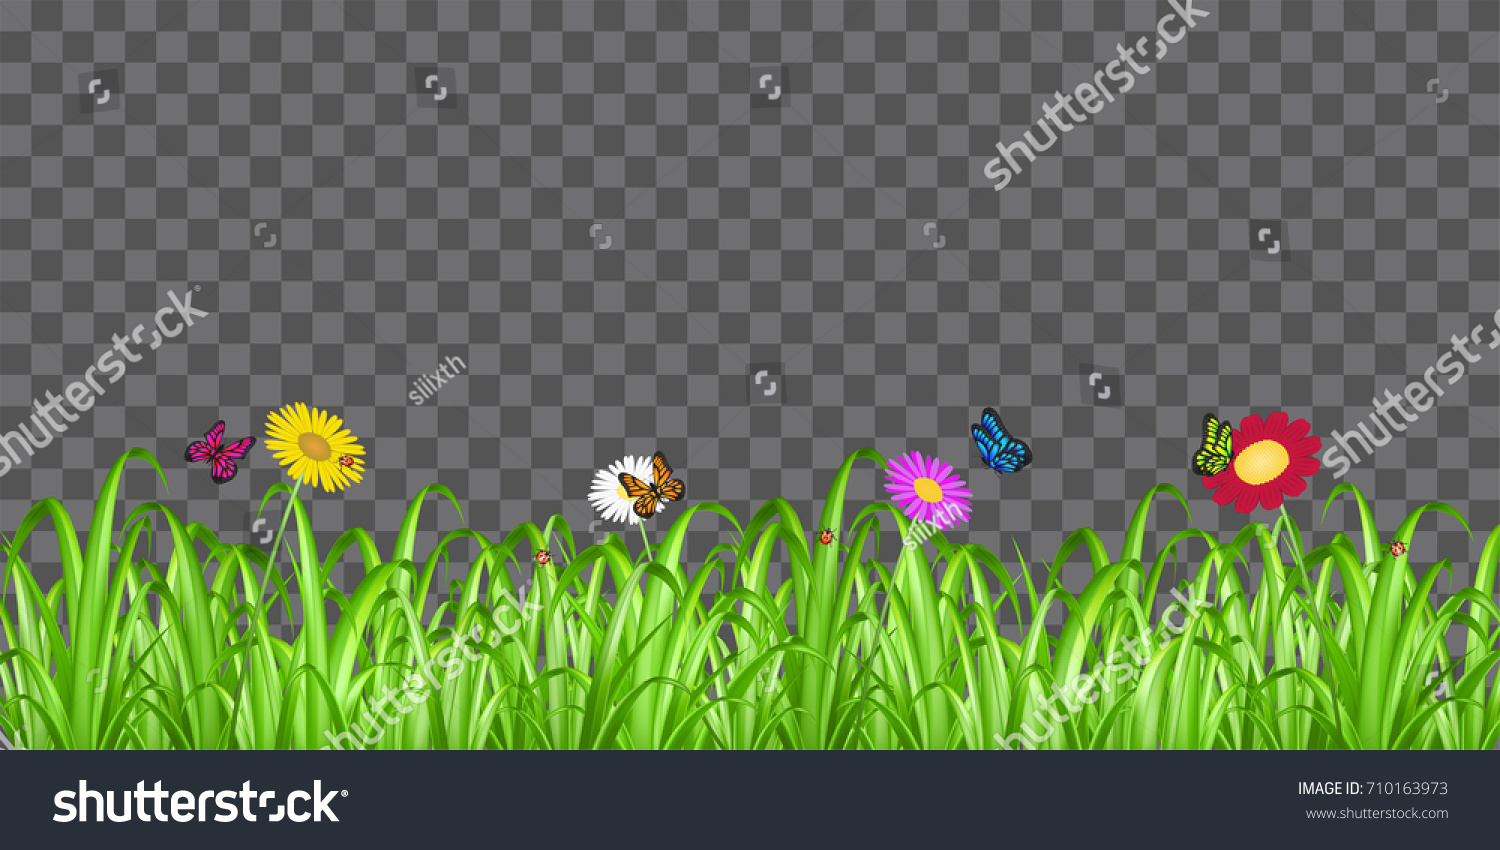 Grass Flower Butterfly On Transparent Background Stock Vector ...